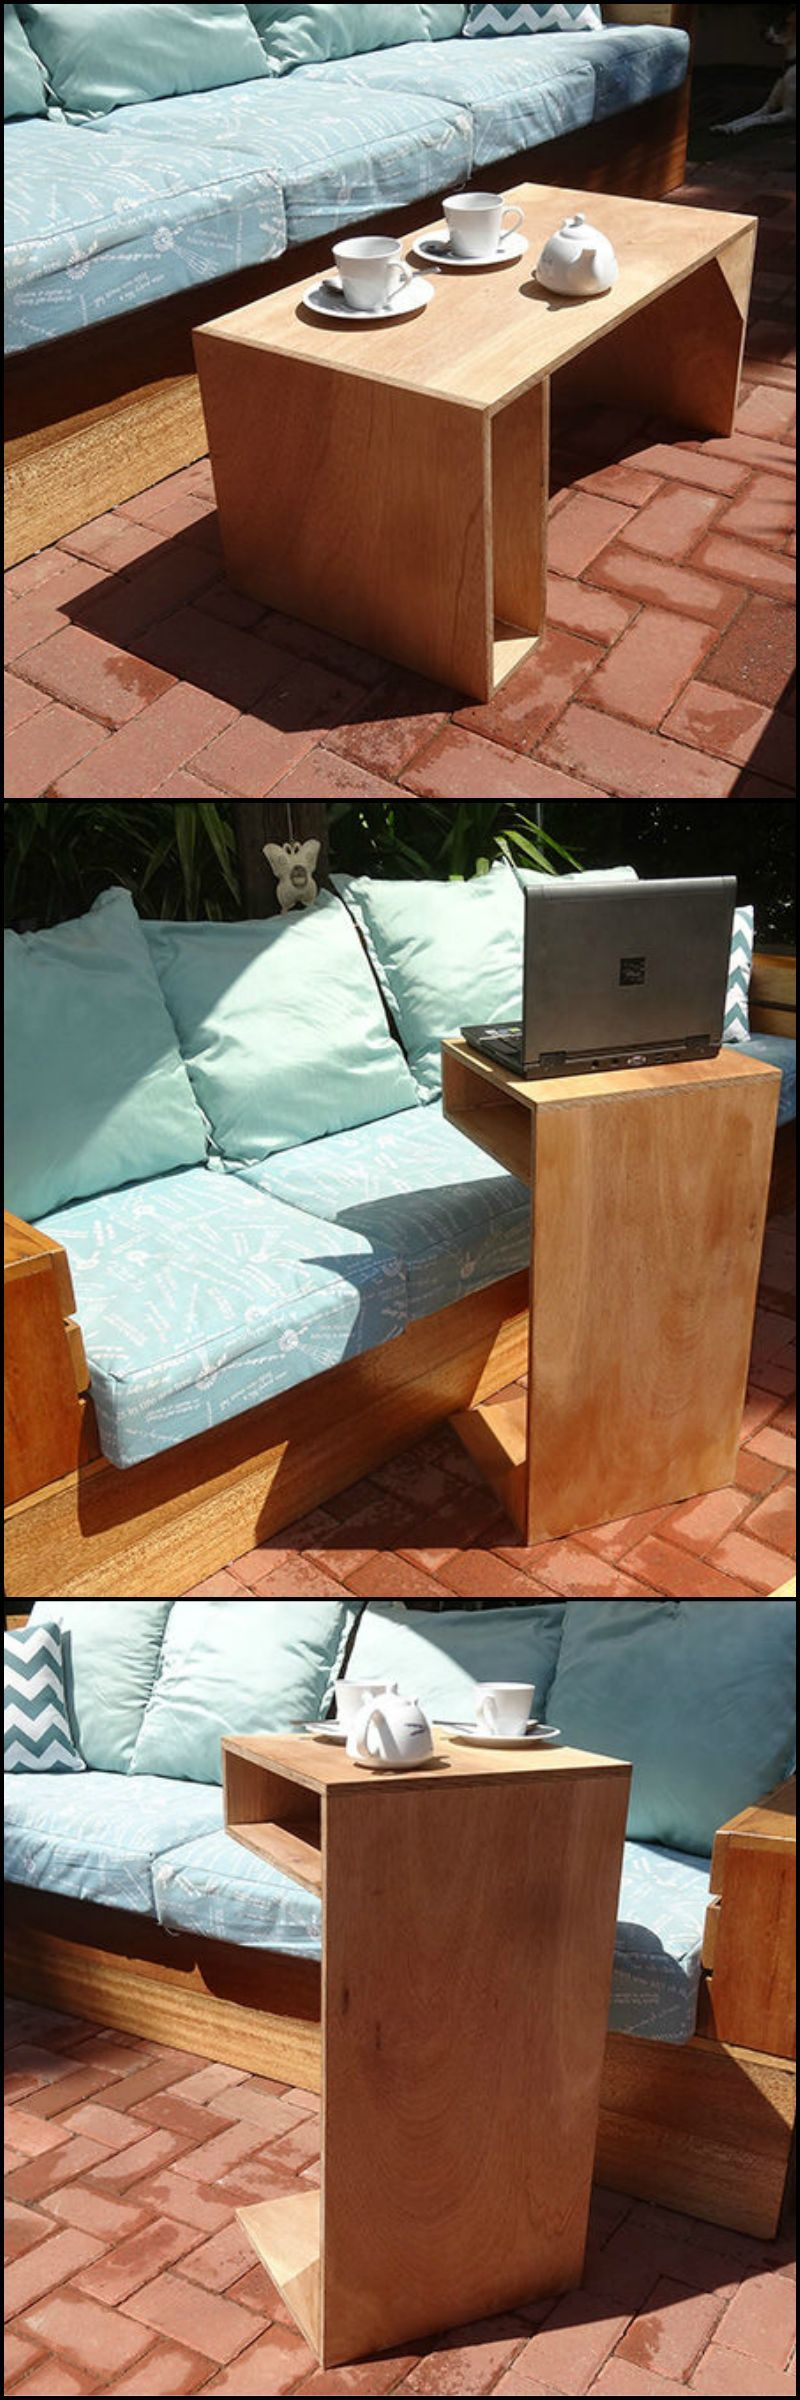 This 3 in 1 table is an end table coffee table and a laptop